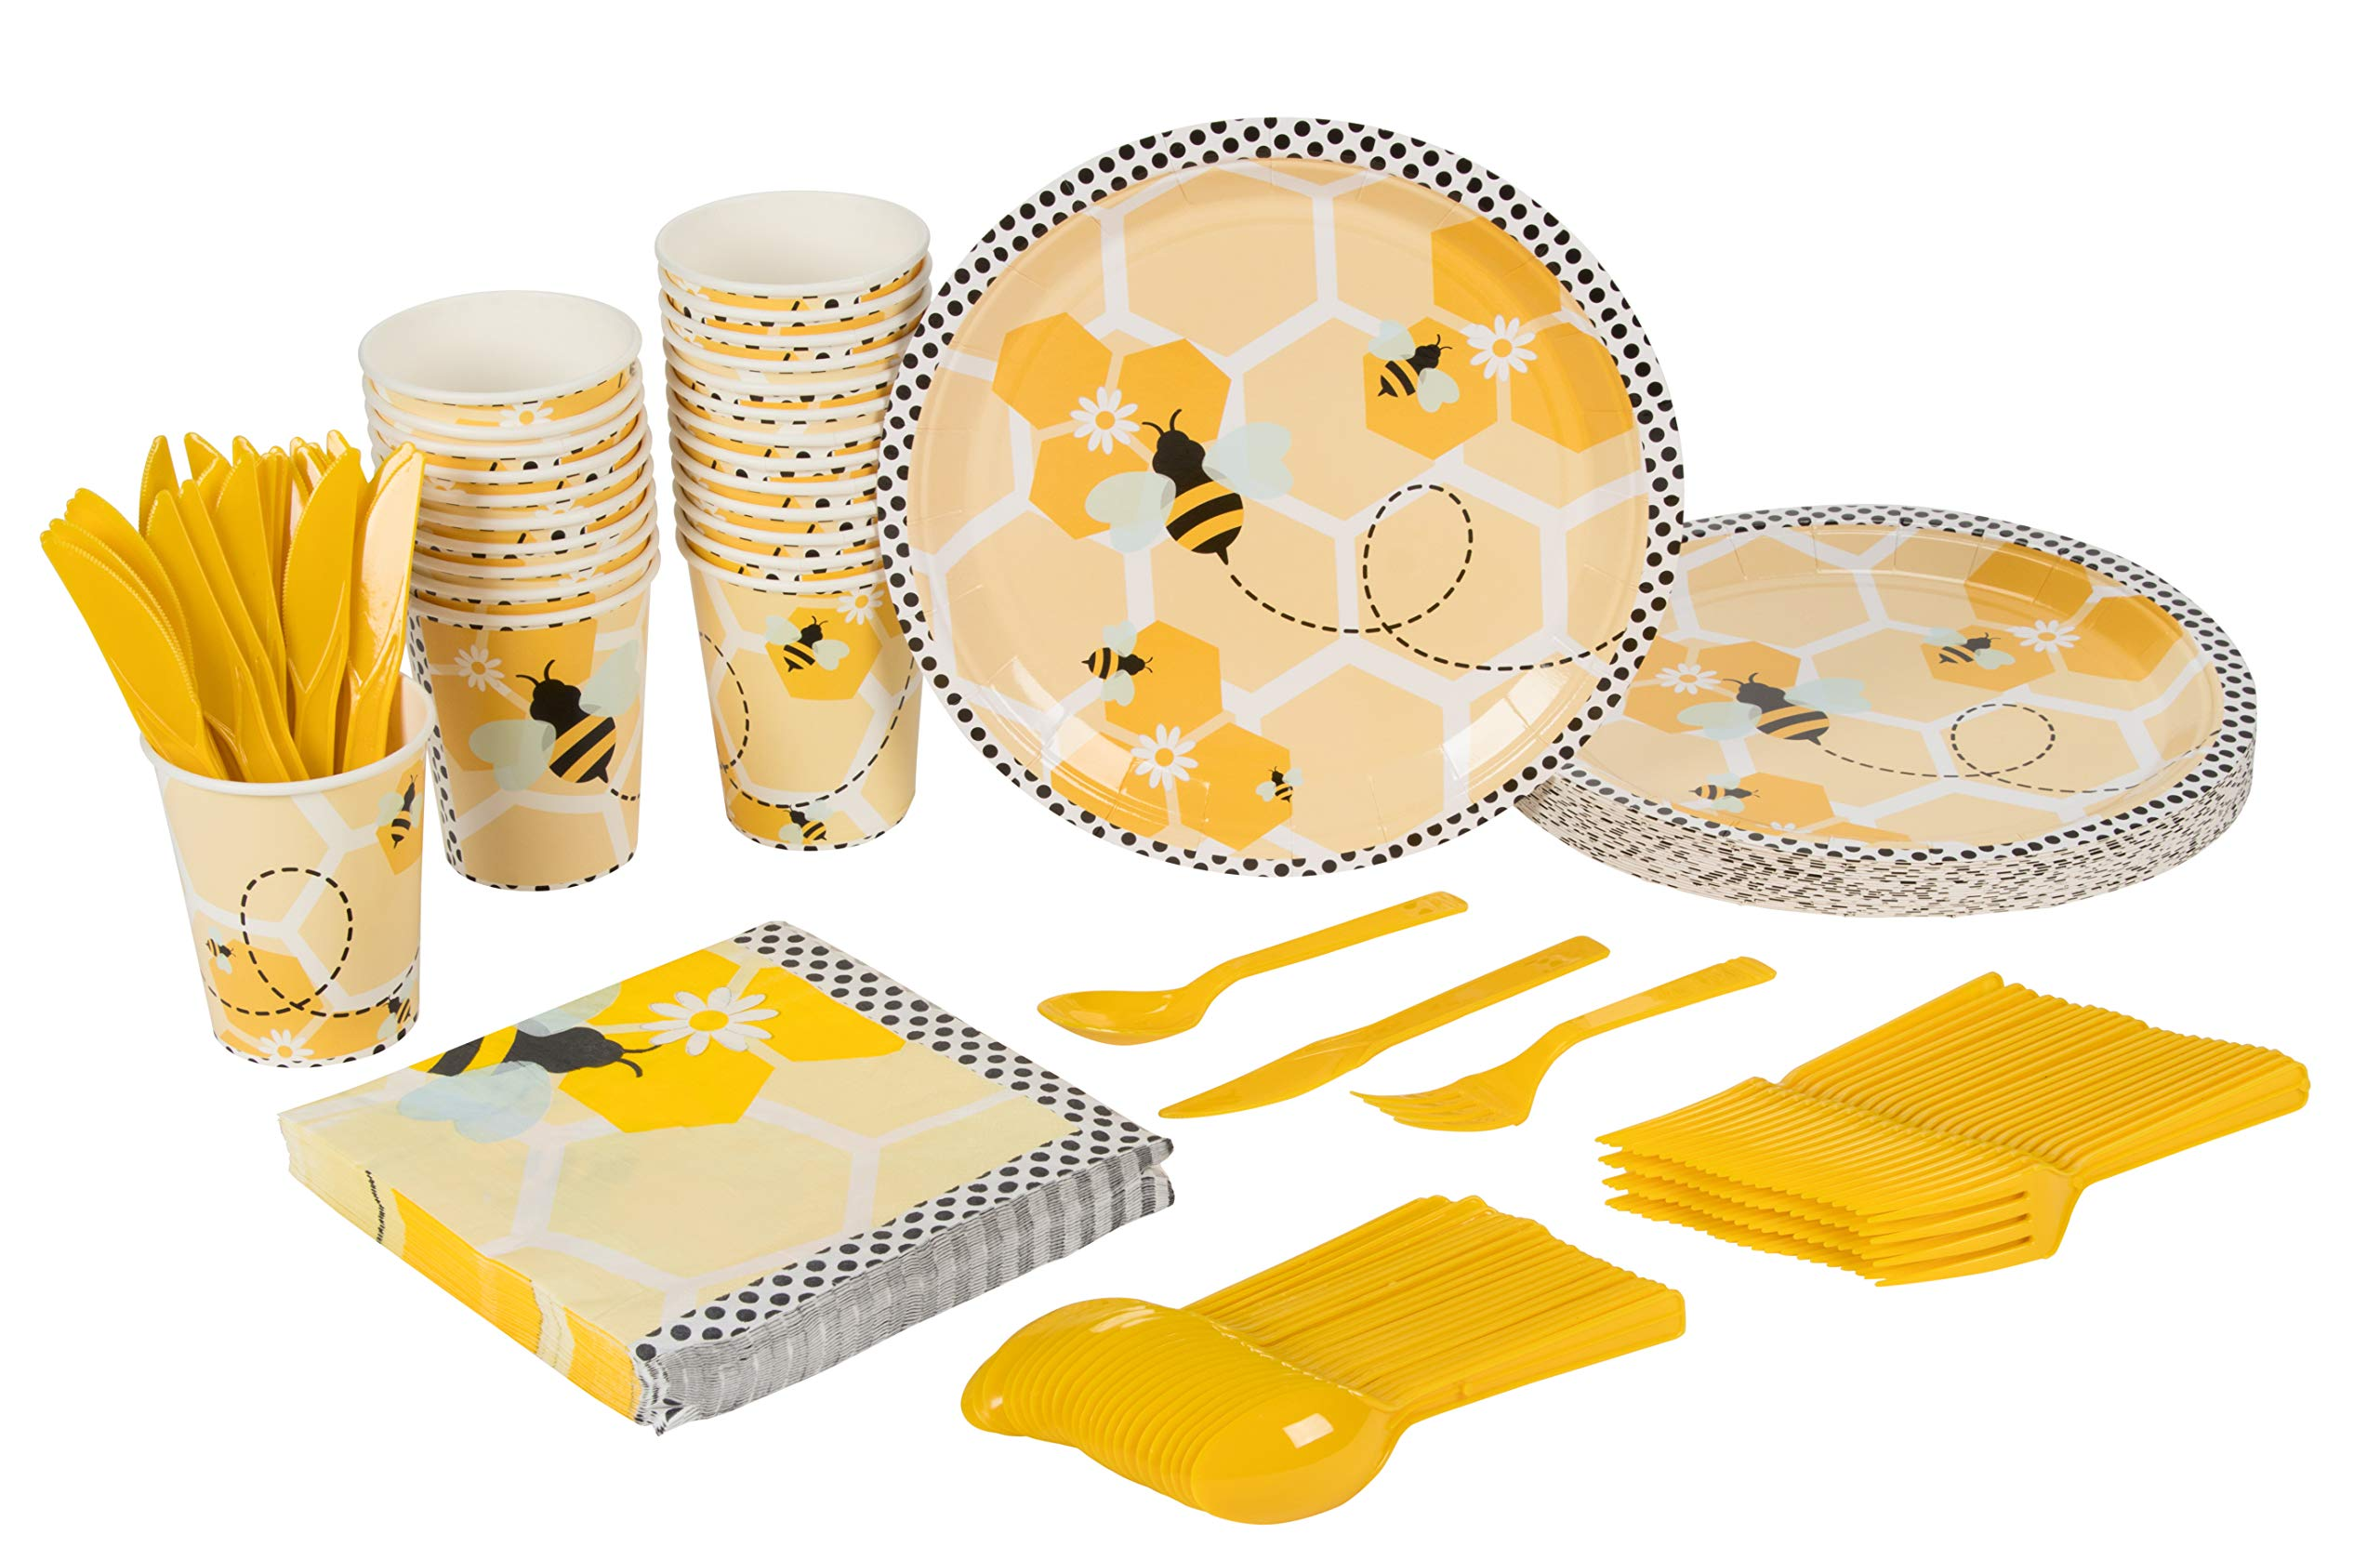 Bee Party Supplies - Serves 24 - Includes Plates, Knives, Spoons, Forks, Cups and Napkins. Perfect Birthday Party Pack for Kids Themed Parties and Baby Shower, Bumblebee Pattern